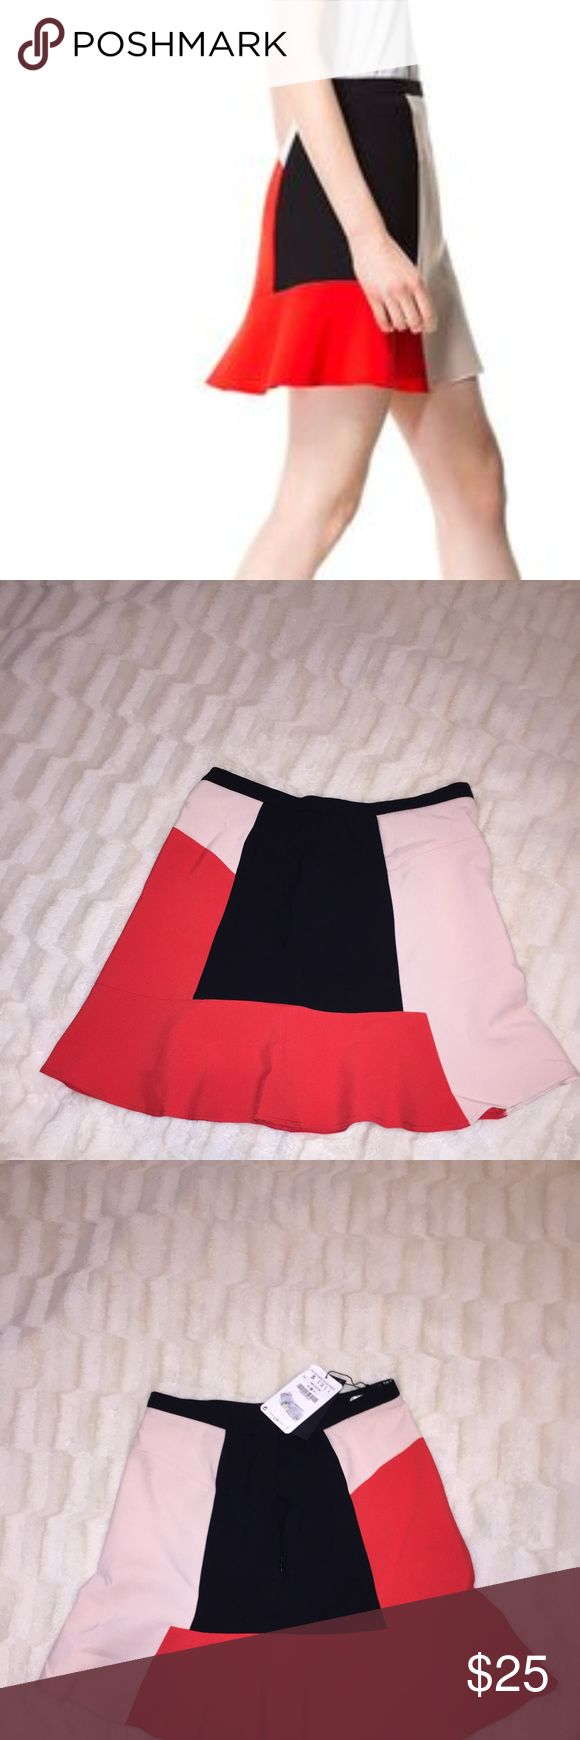 """ZARA Woman Colorblock Trumpet Skirt size Small This is an adorable colorblock trumpet skirt from Zara Woman, in a size small. It has an asymmetrical color block design.  Similar style seen on Olivier Palermo! Super cute for fall - would look great with black tights or black over-the-knee boots! I love this skirt, but I am too tall for it (I'm 5'10"""").  ❌No trades  ❌Poshmark Transactions Only  ❌No asking for the lowest price Zara Skirts Mini"""